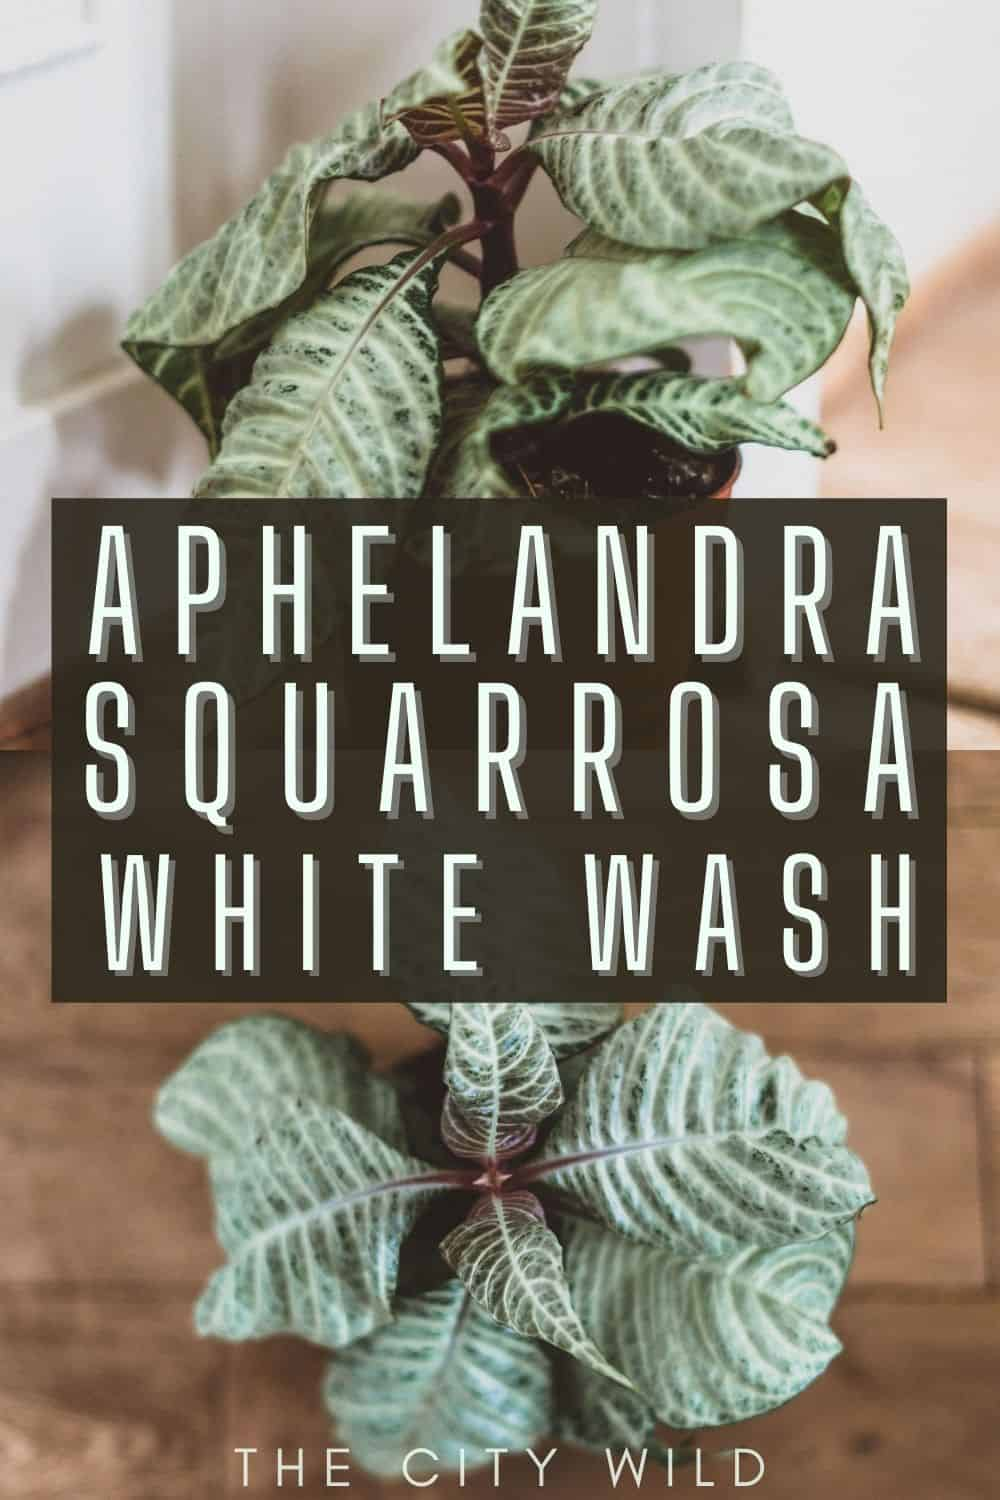 Aphelandra Squarrosa White Wash Care Guide (Zebra Plant)/ propagation, watering